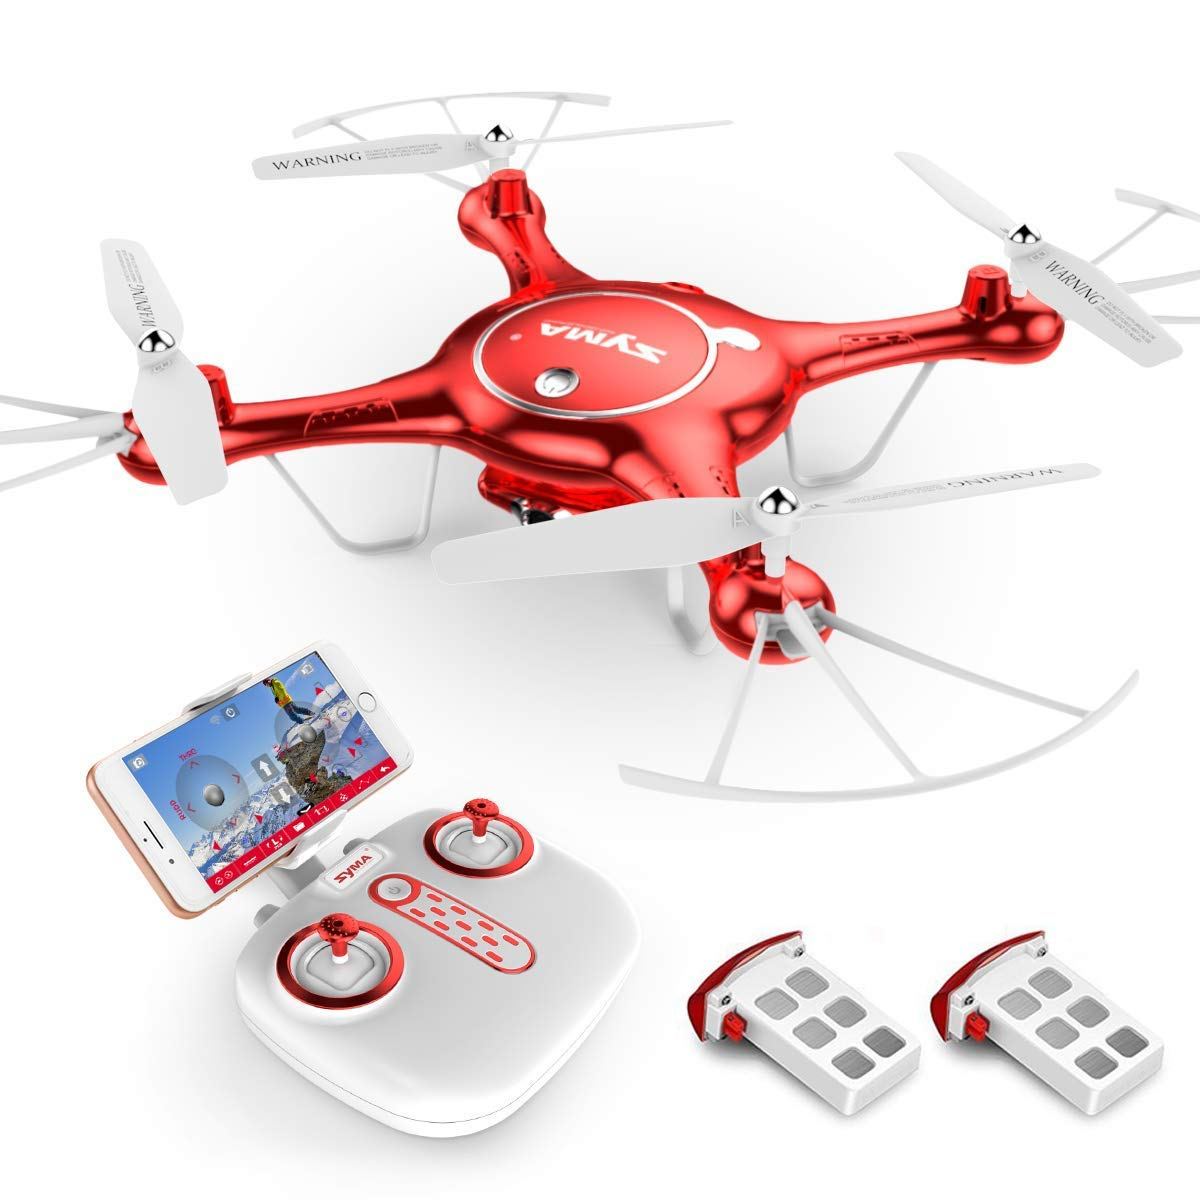 CDM product Goolsky Syma X5UW Wifi FPV Quadcopter 720P HD Camera RC Drone with Barometer Set Height Function and One Extra Battery RTF big image